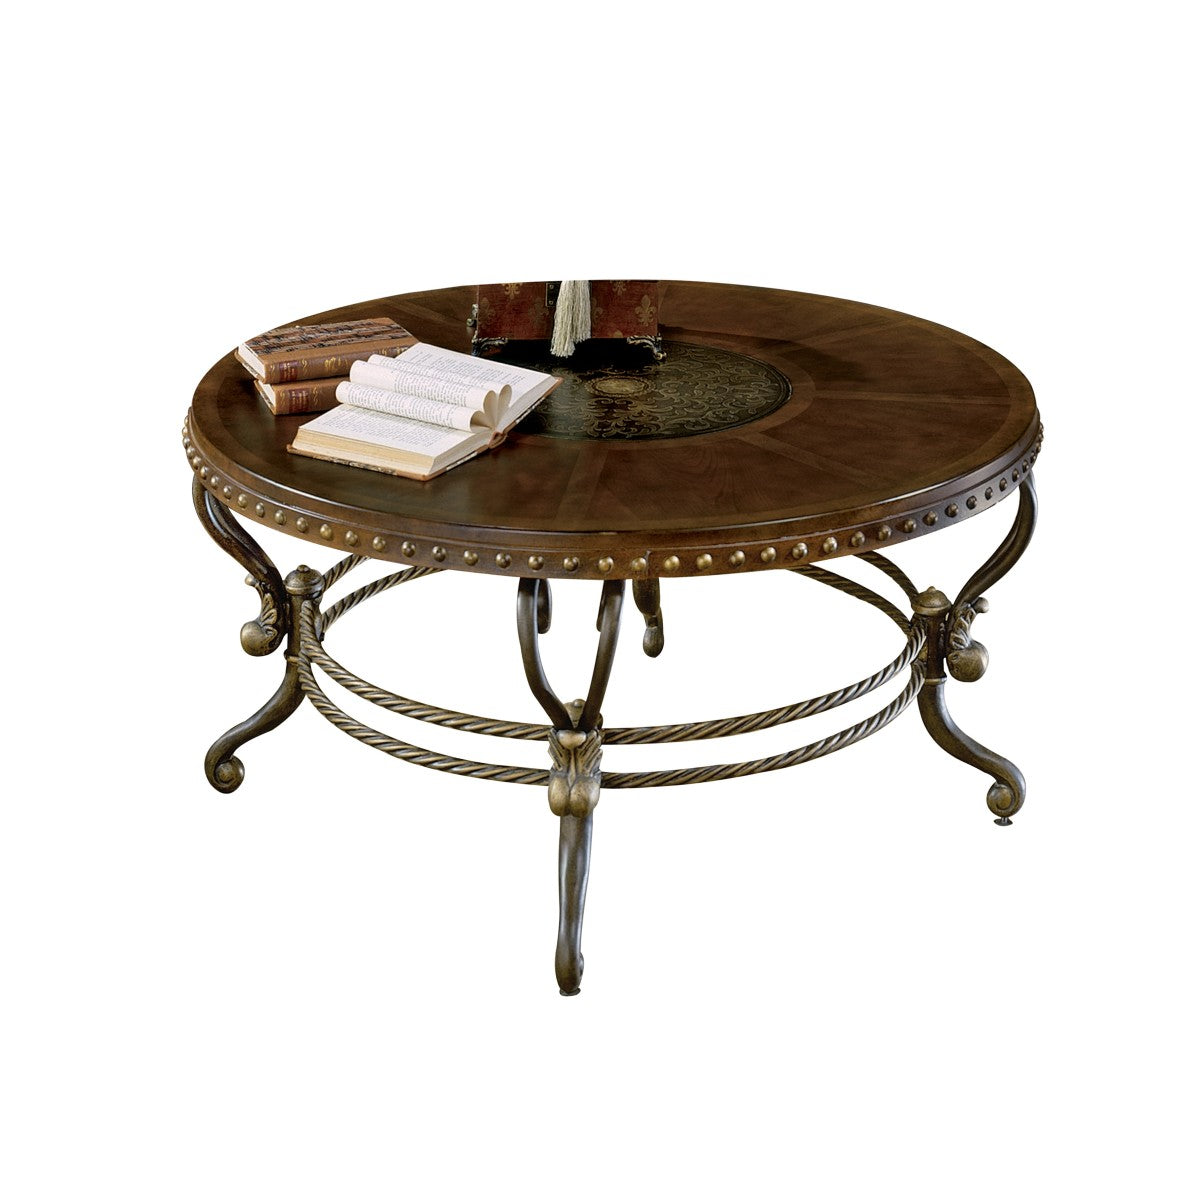 Homelegance Jenkins Warm Brown Wood And Metal Finish Round Coffee Table